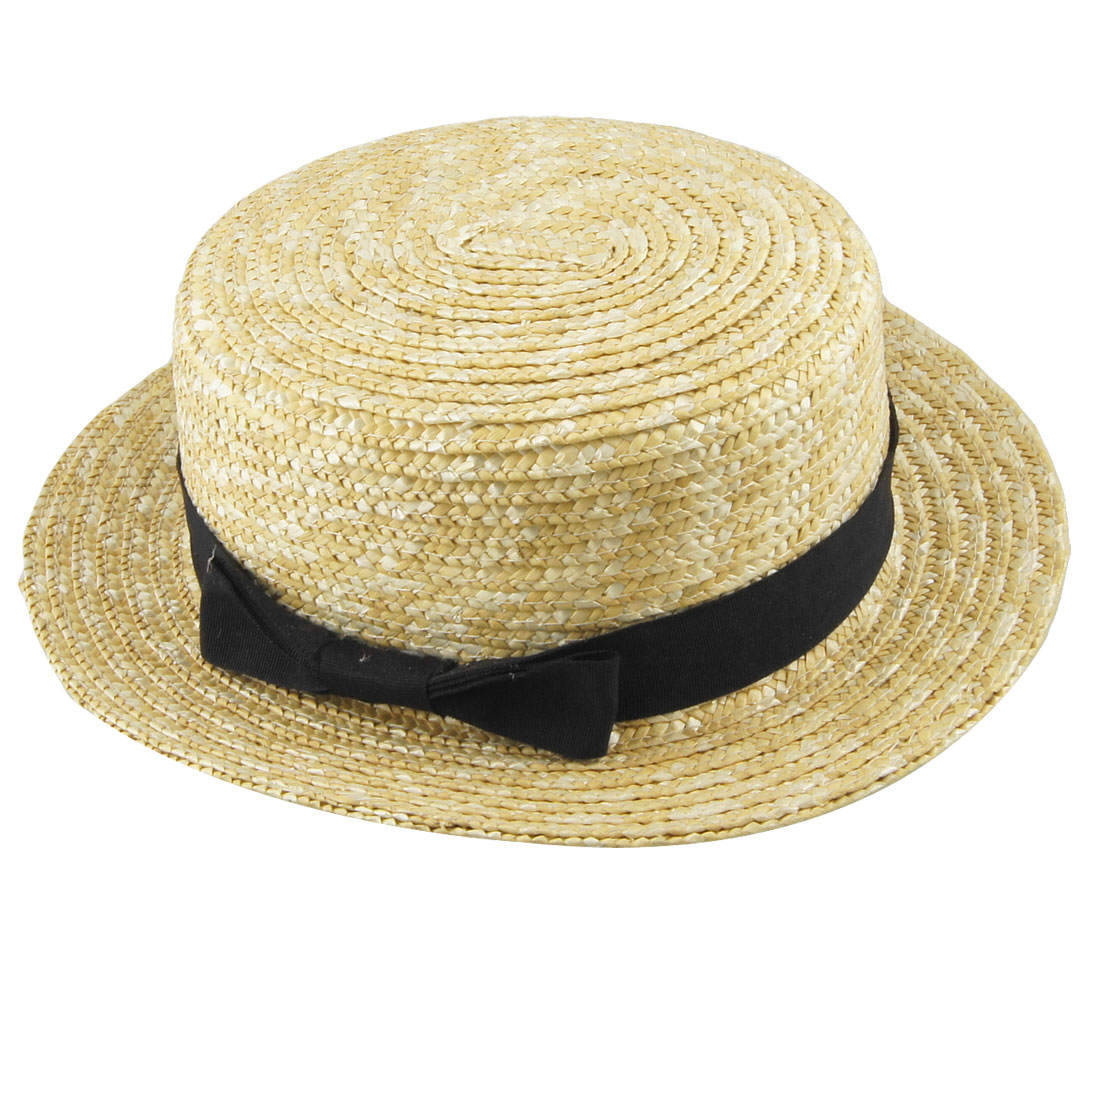 Woman Man Black Bowtie Strap Decor Beige Casual Straw Trilby Hat Cap